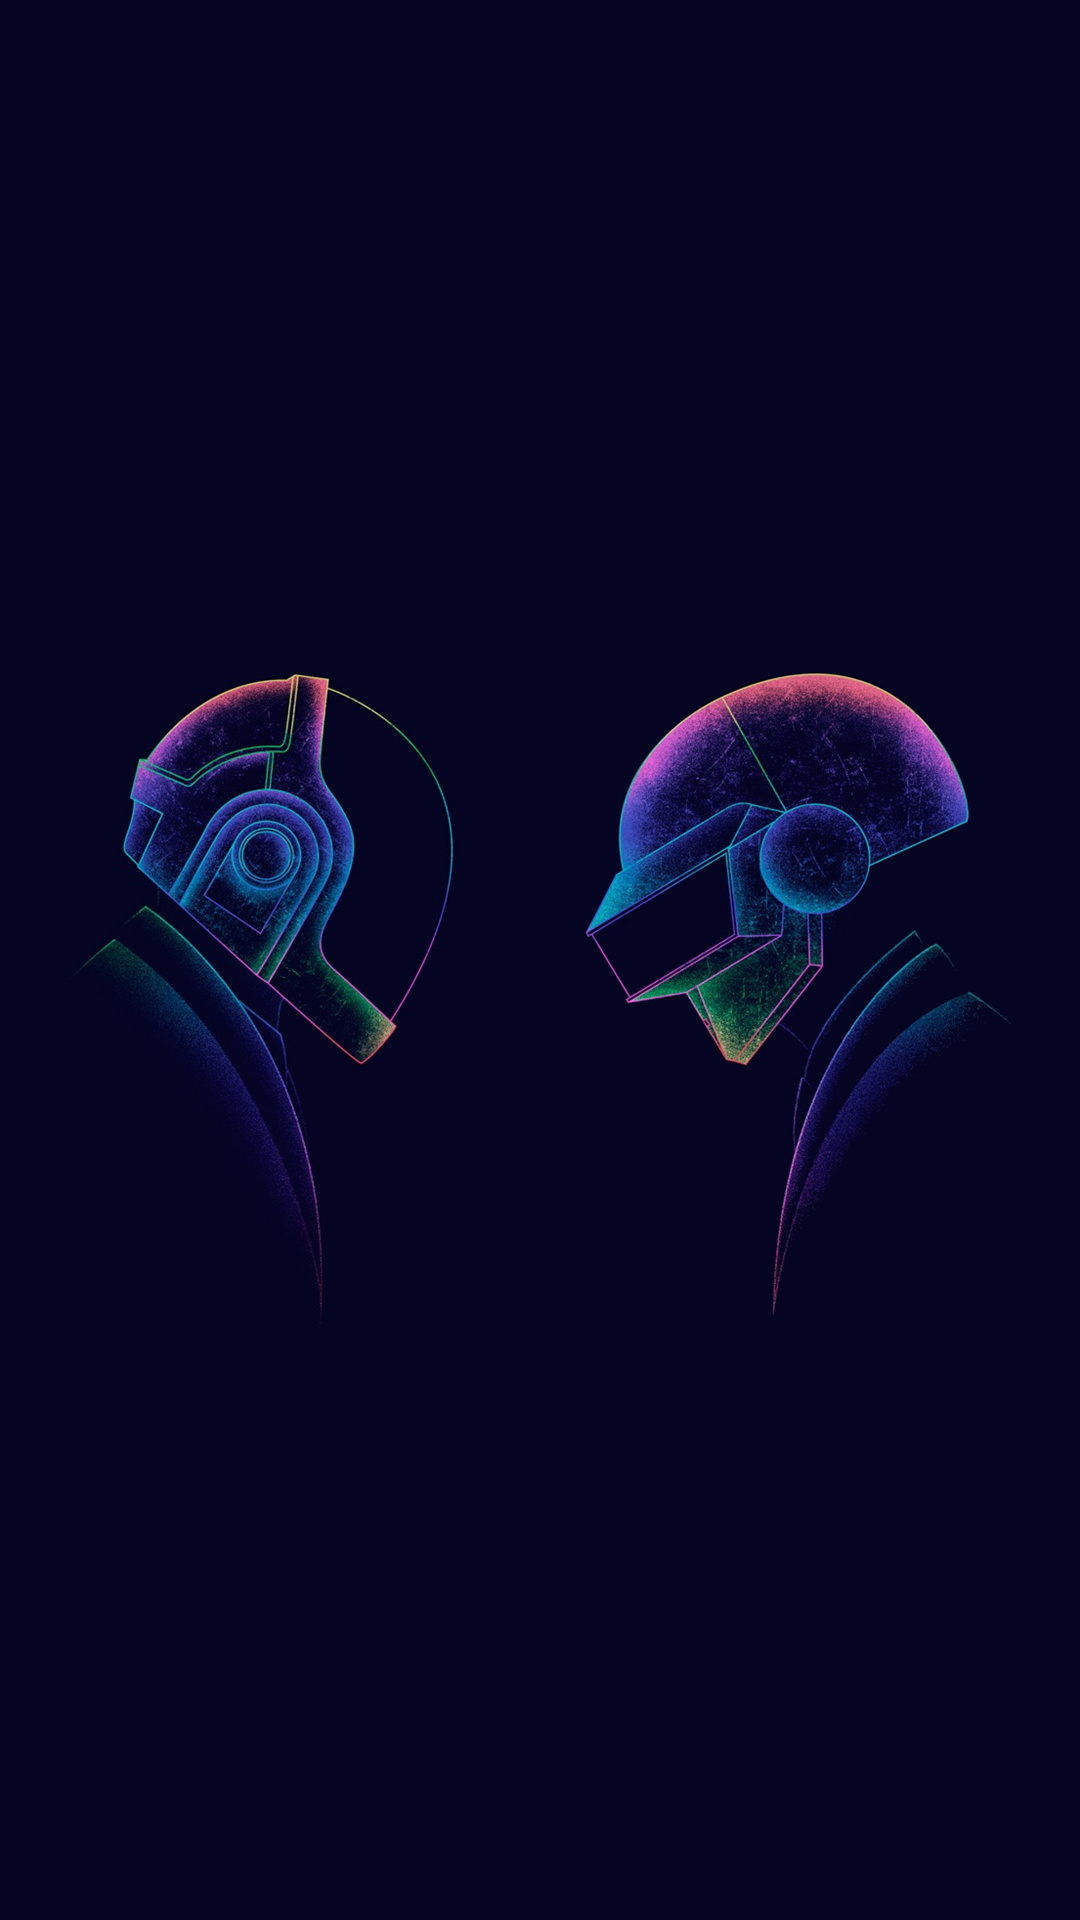 iPhone wallpaper daft punk flat Les 3Wallpapers iPhone du jour (19/03/2018)